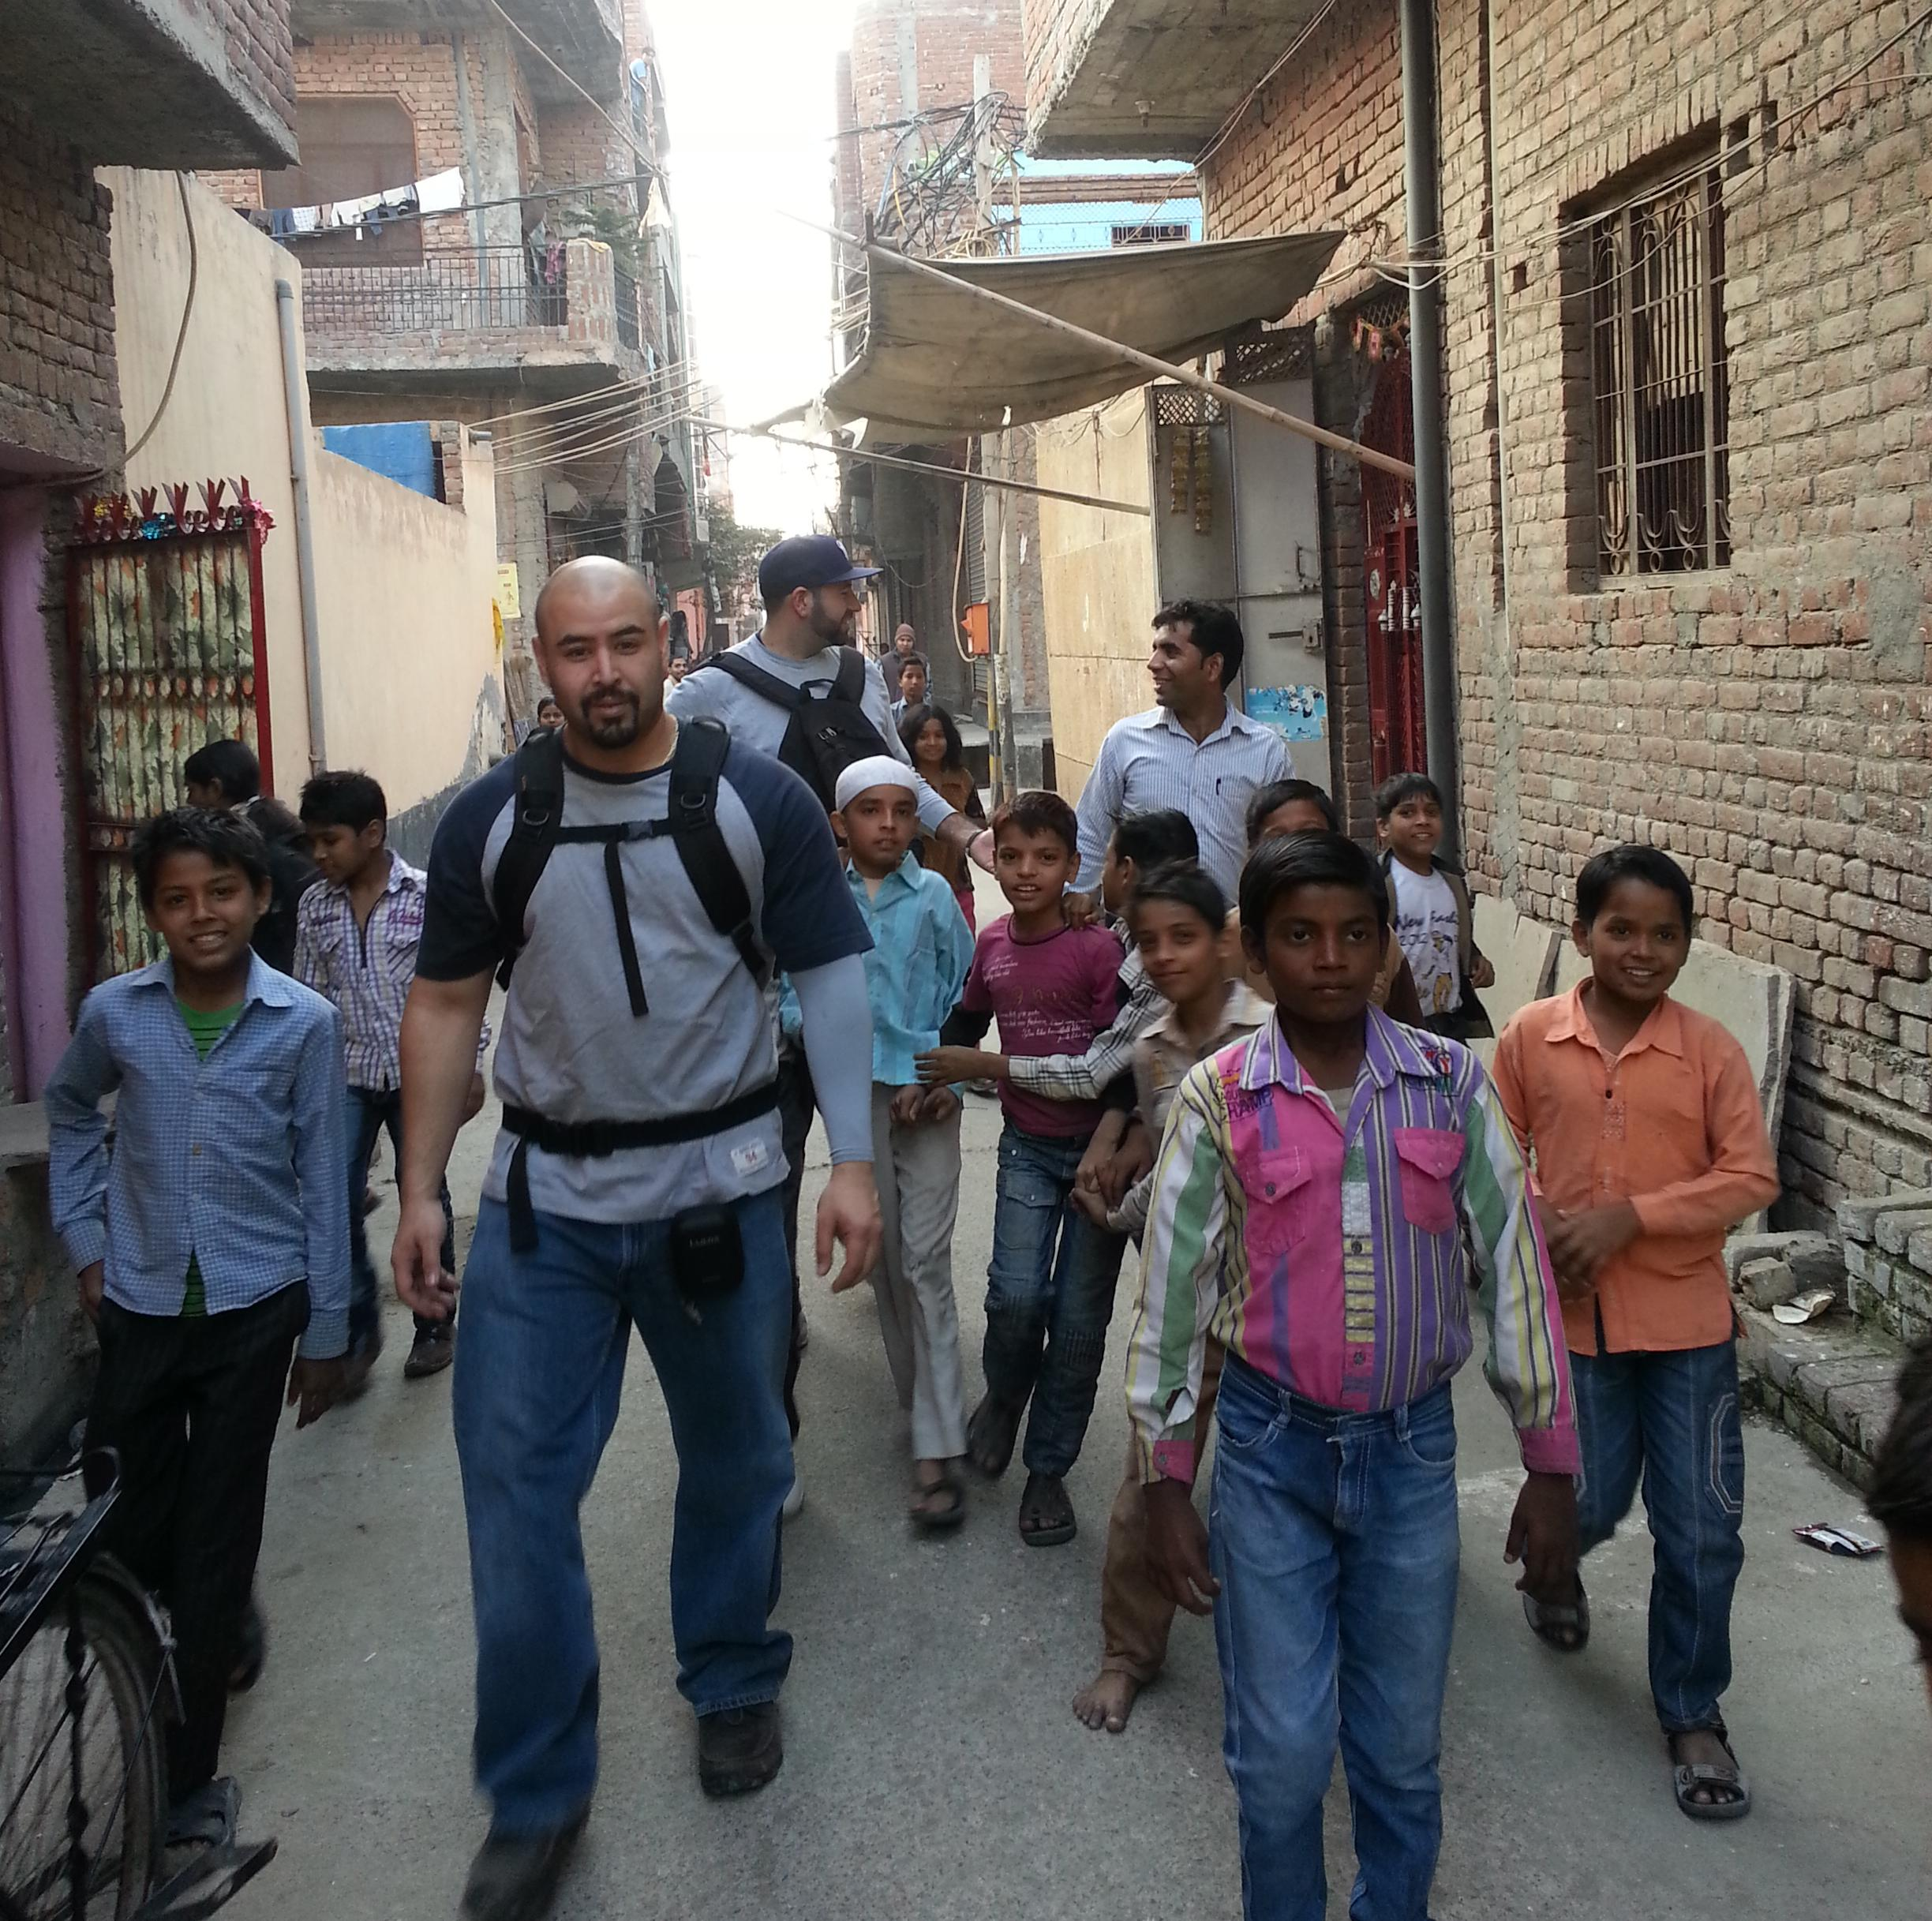 Touro College of Pharmacy students travel to India to provide healthcare in the slums.